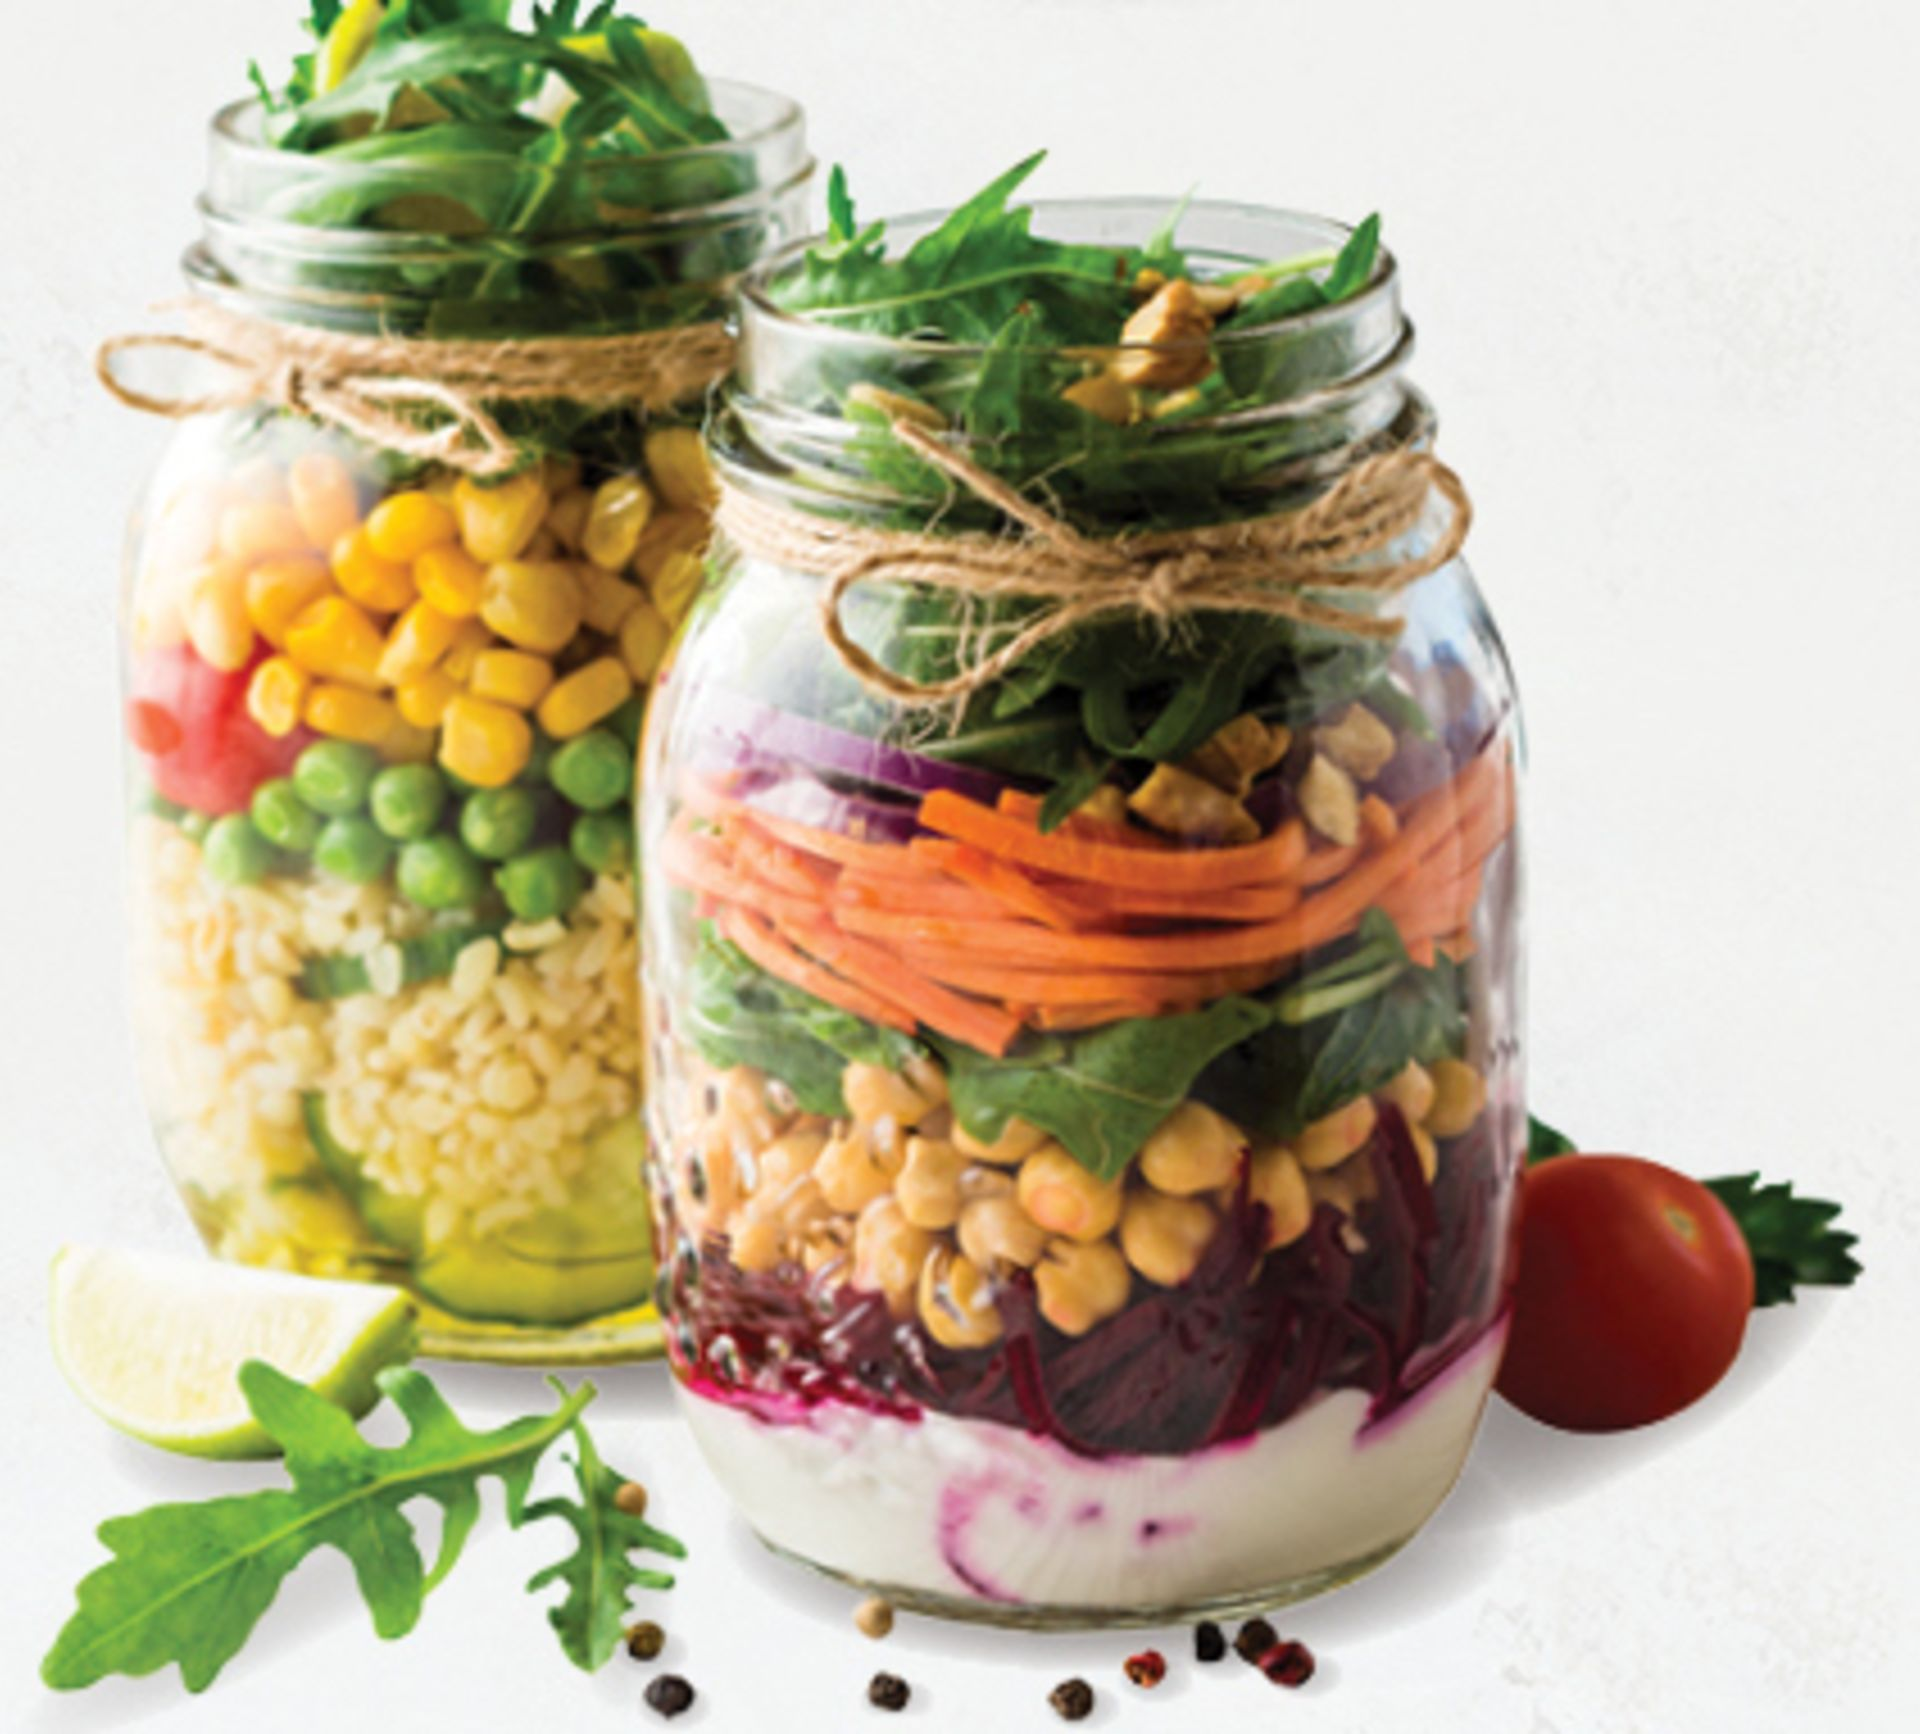 Strategize Your Meal Planning